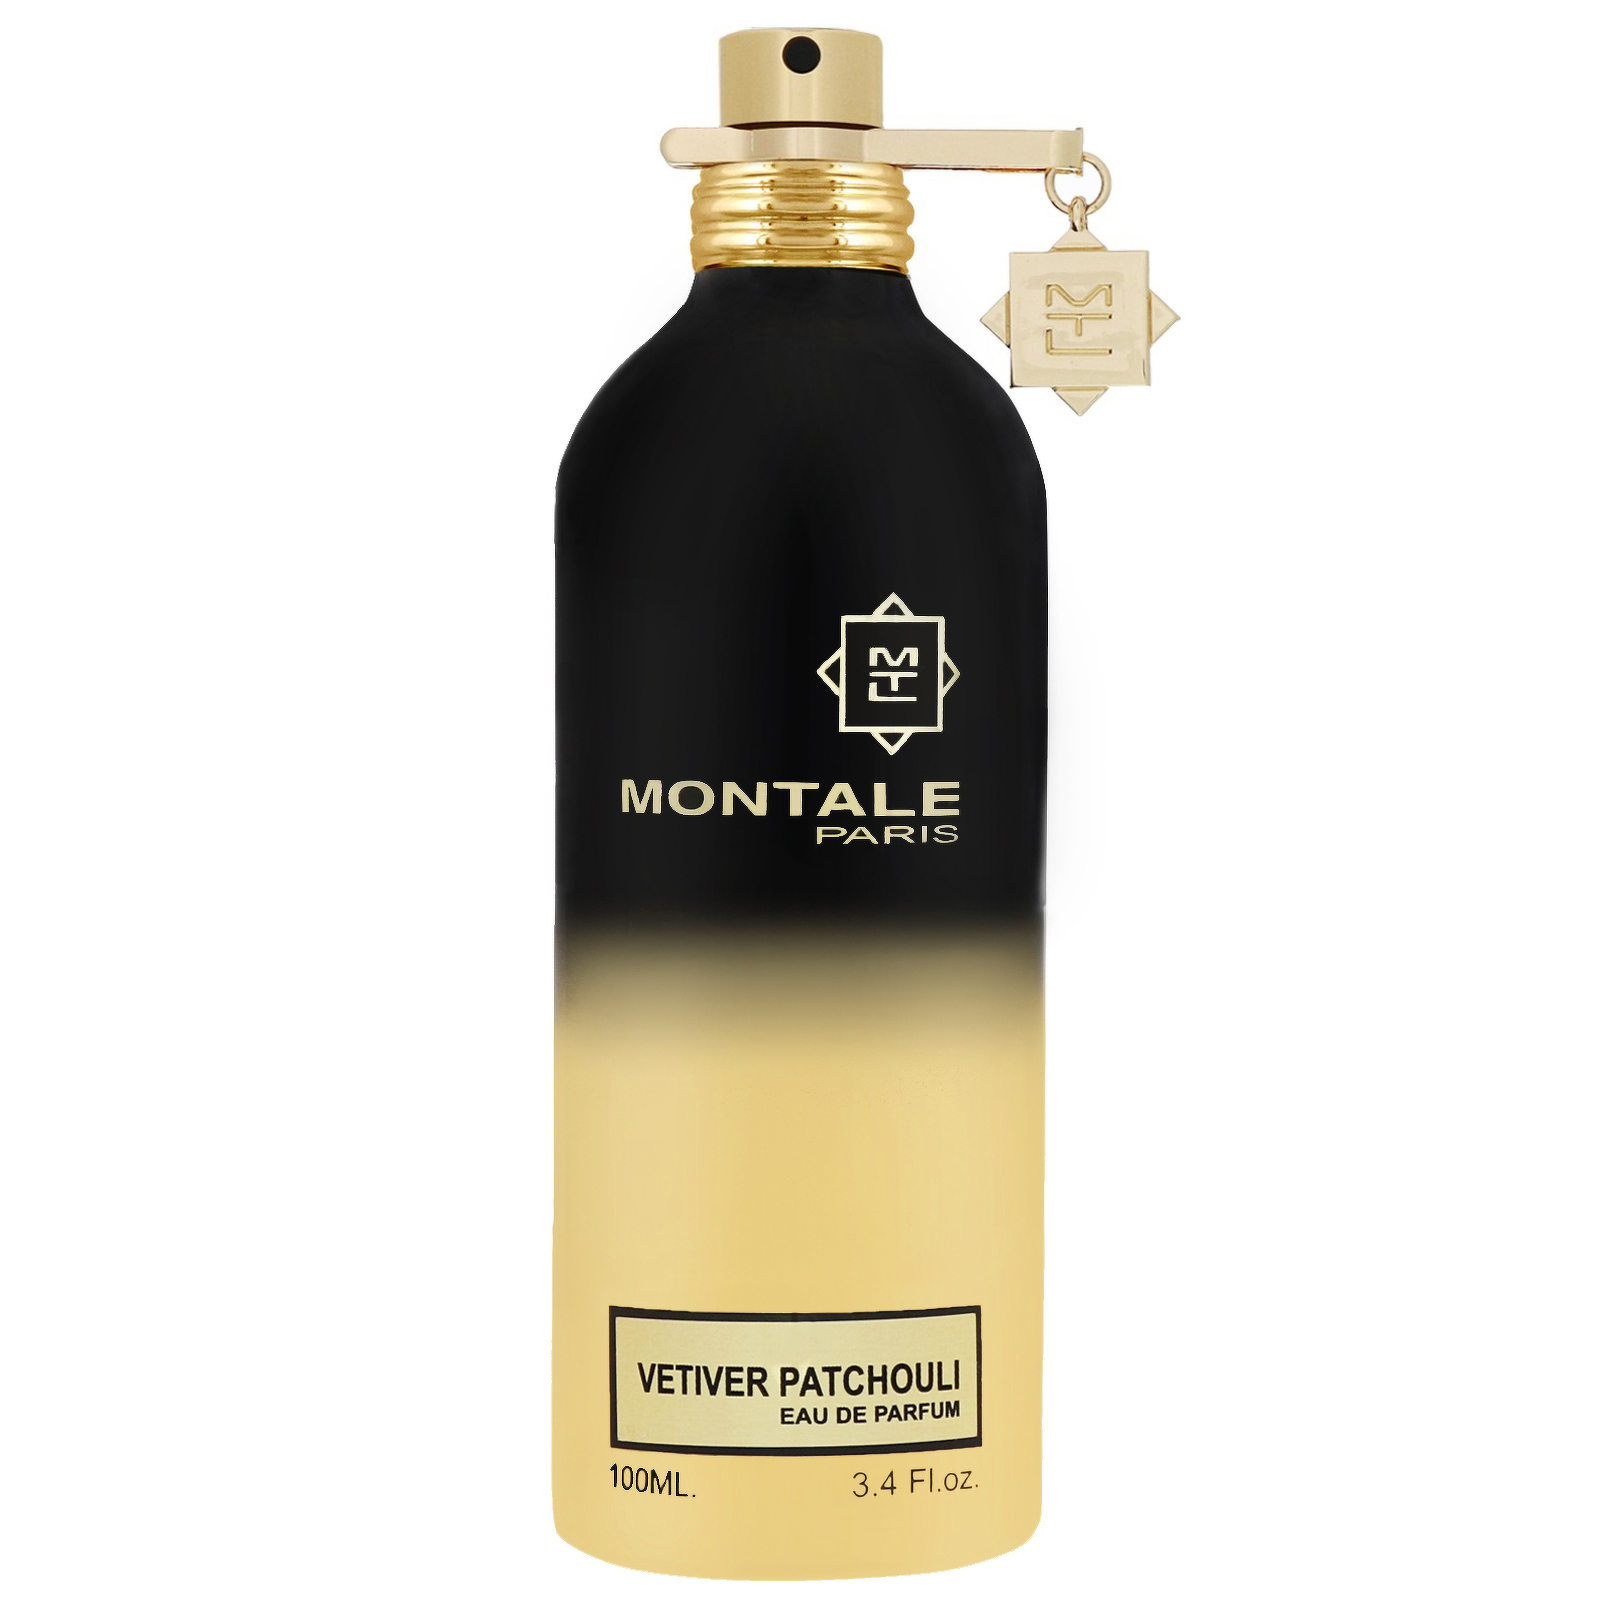 Montale Vetiver Patchouli Eau de Parfum Spray 100ml